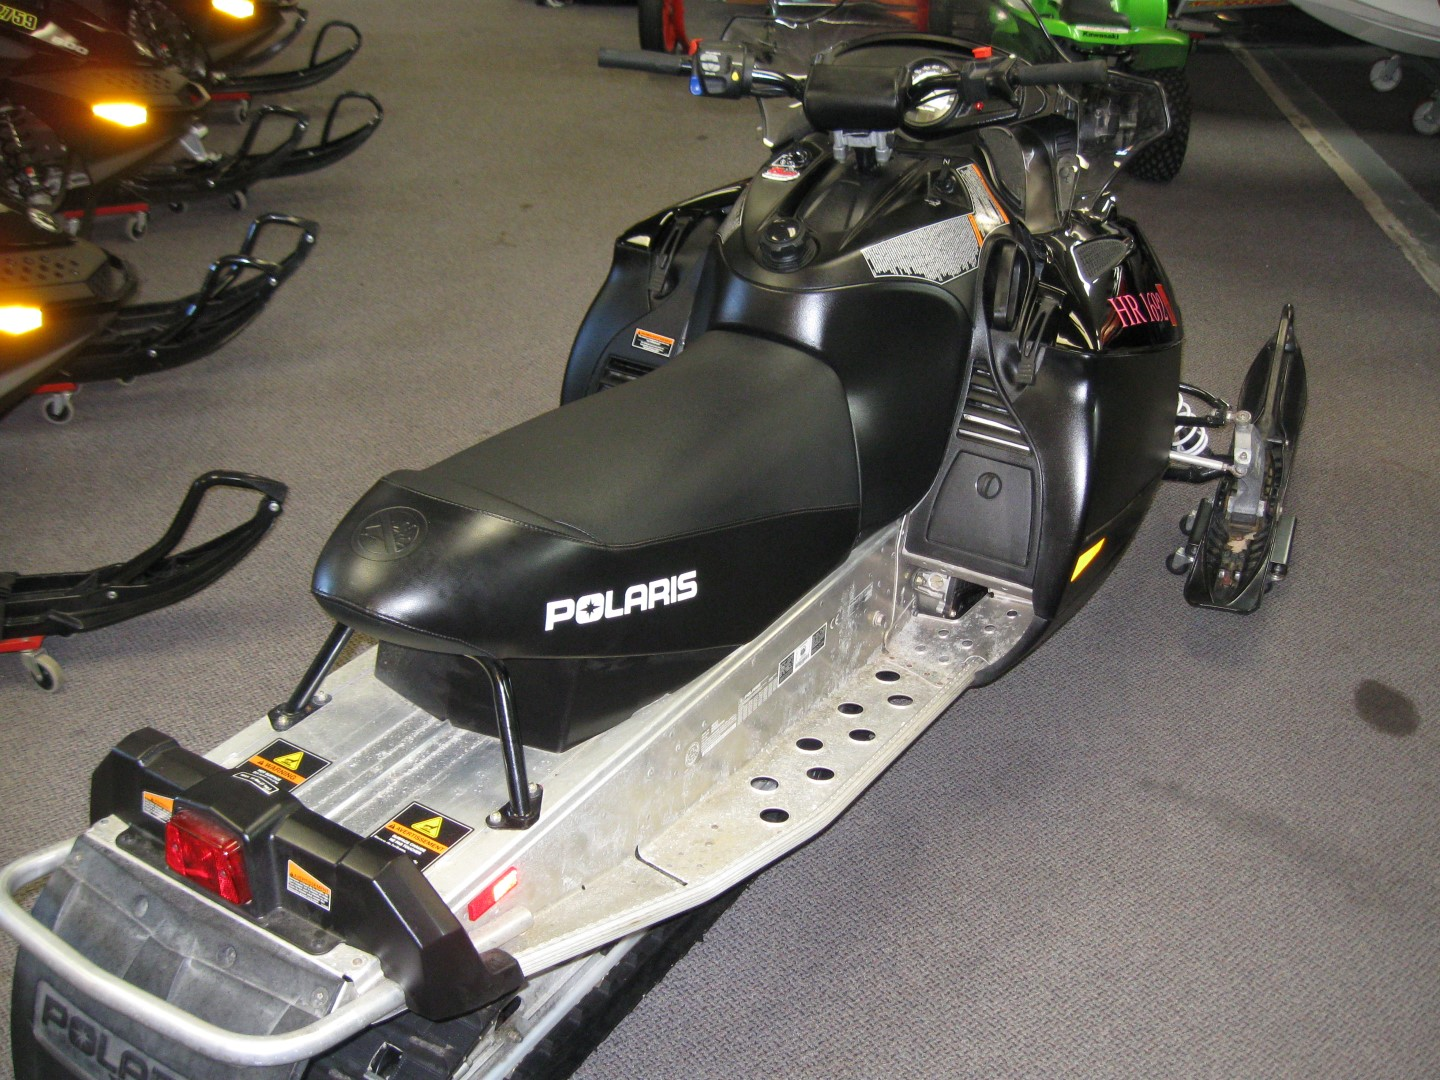 2008 Polaris IQ Shift 600 for sale black minnetonka mn seaberg motorsports crosslake mn rear quarter right seat